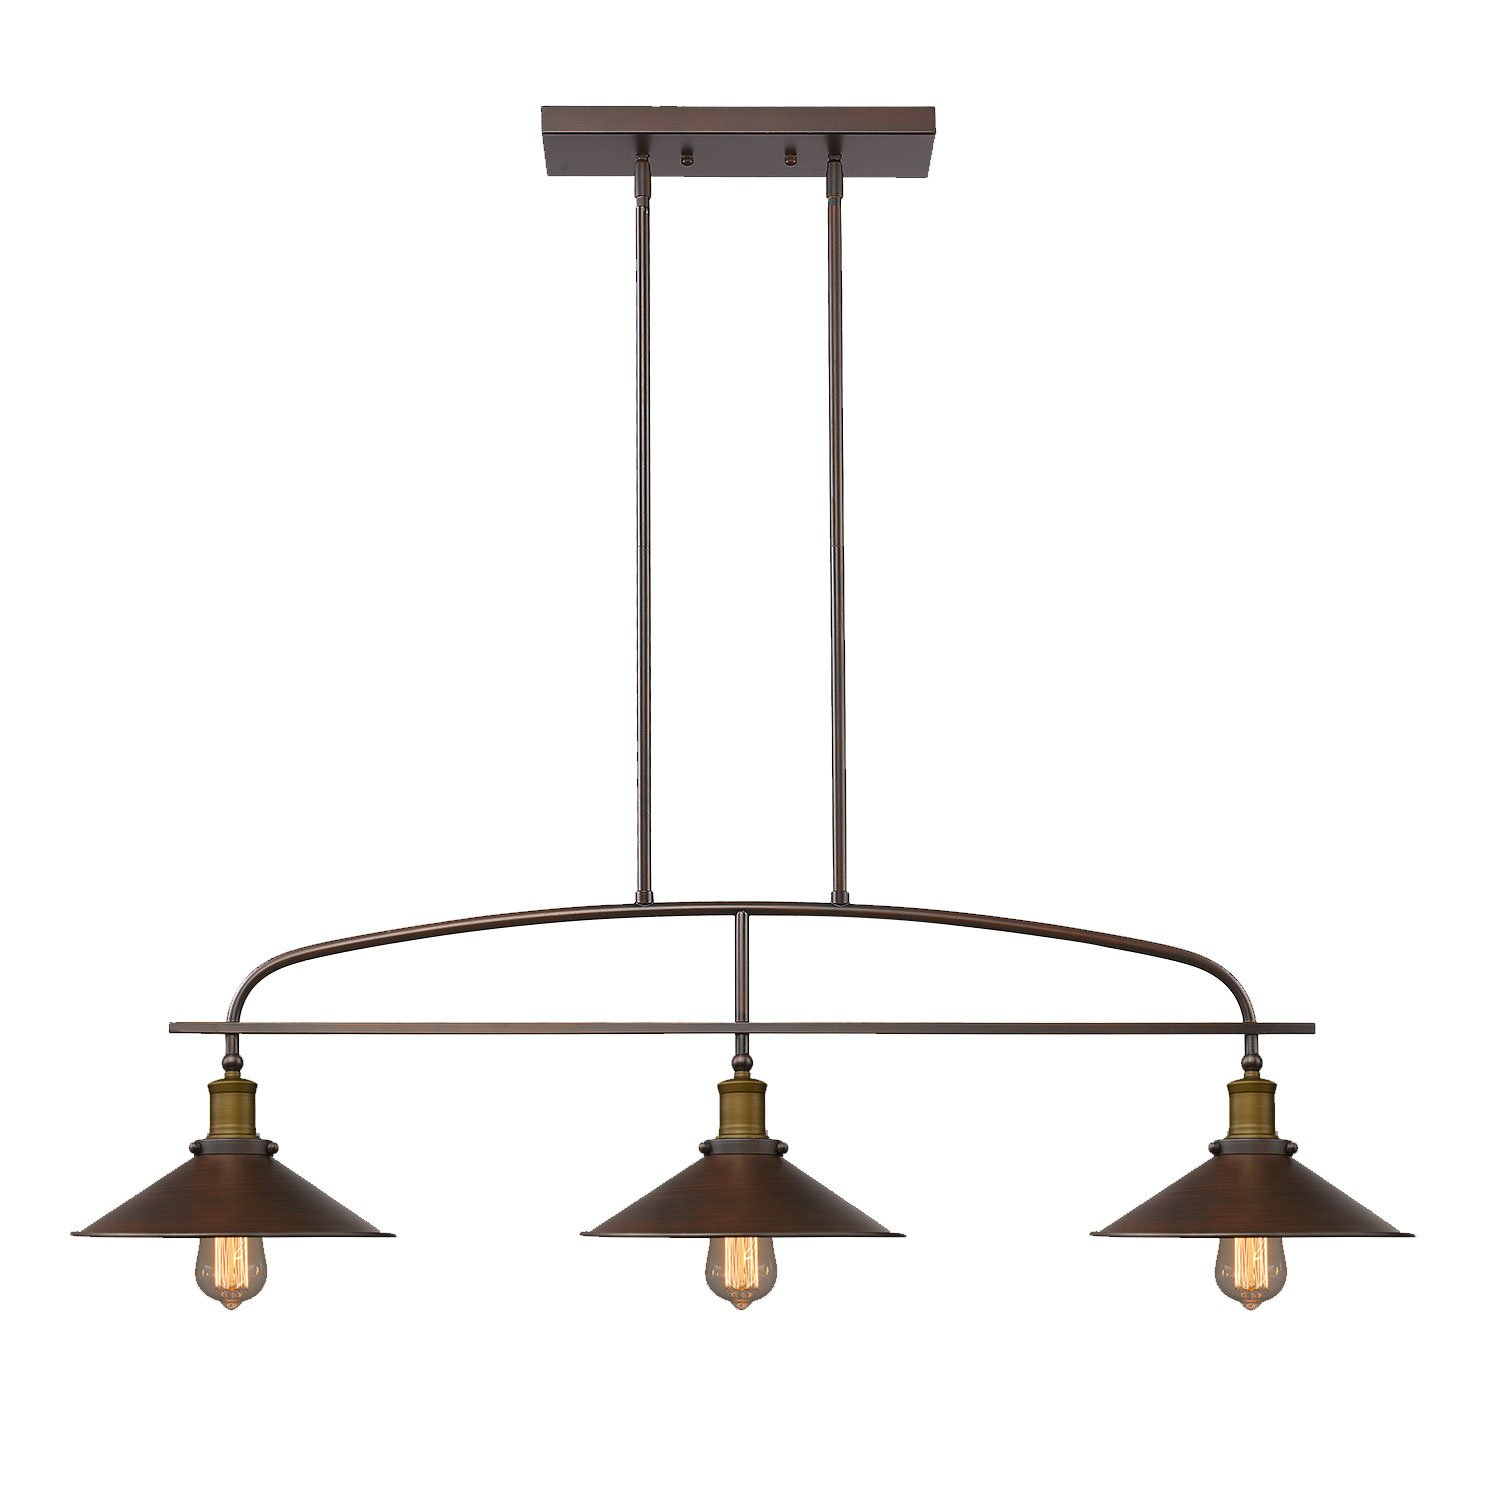 YOBO Lighting Antique Kitchen Island Pendant 3light Metal